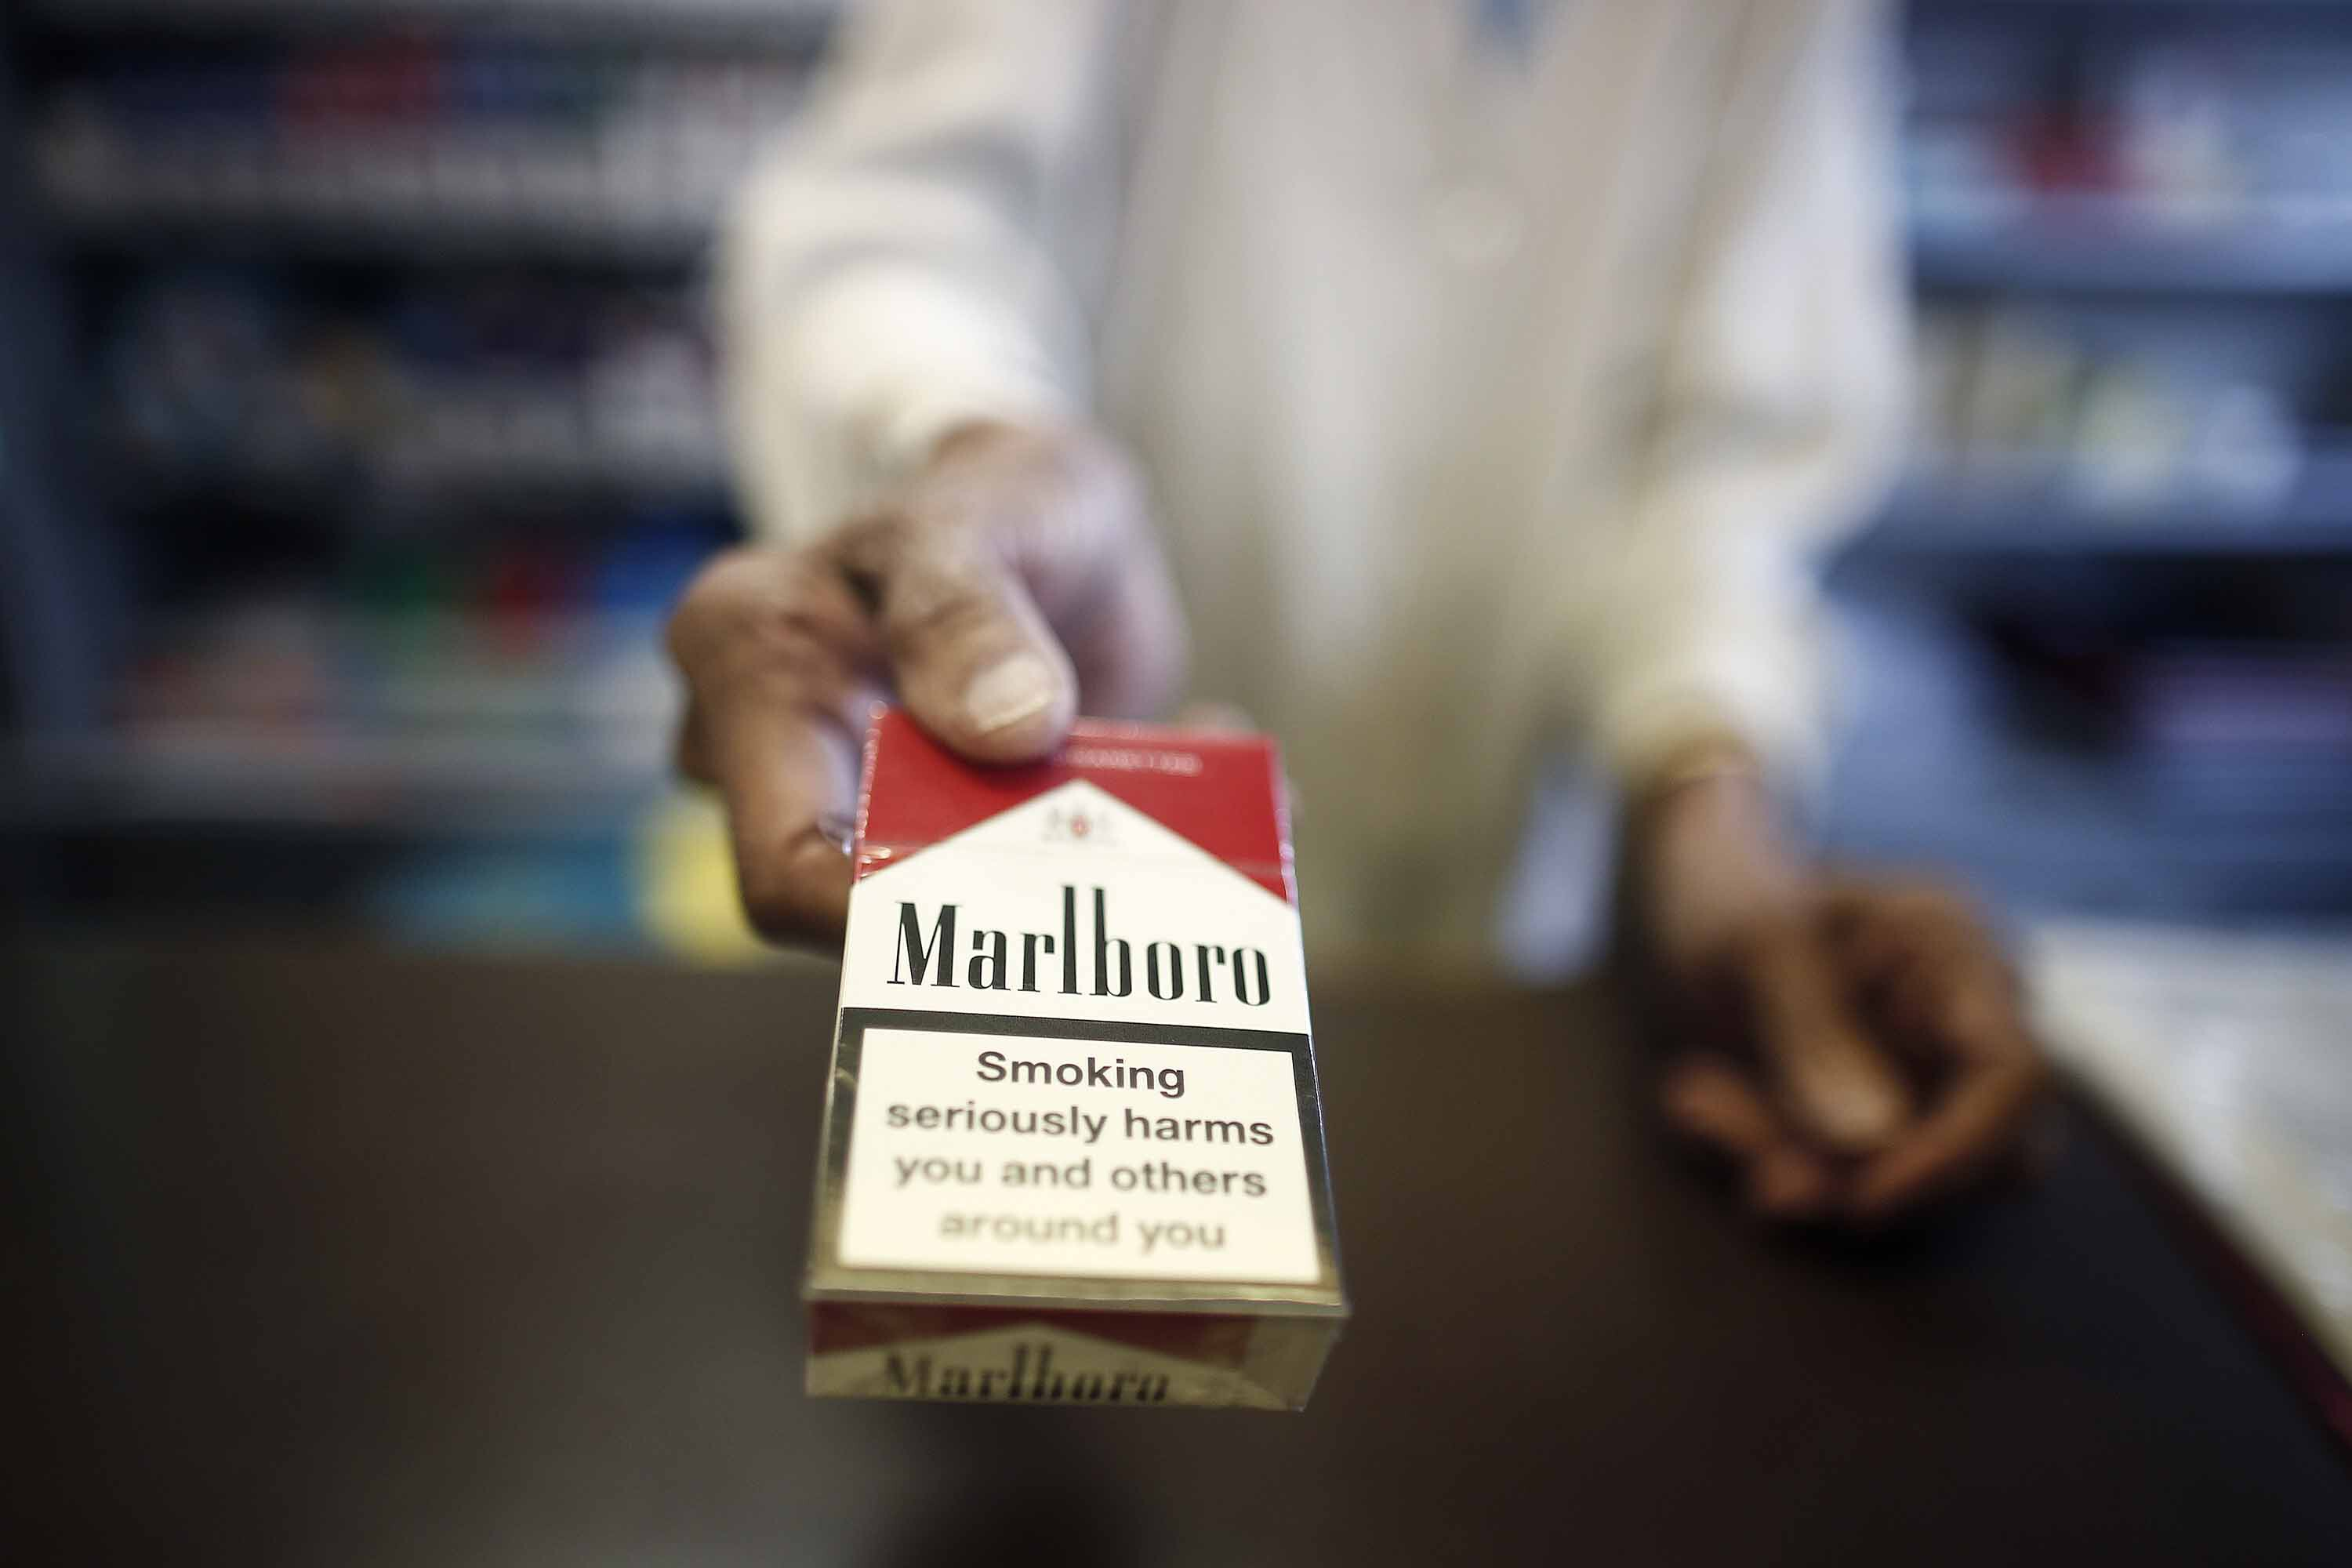 Marlboro owner wants to buy a company that makes asthma inhalers. Health charities say it must be stopped